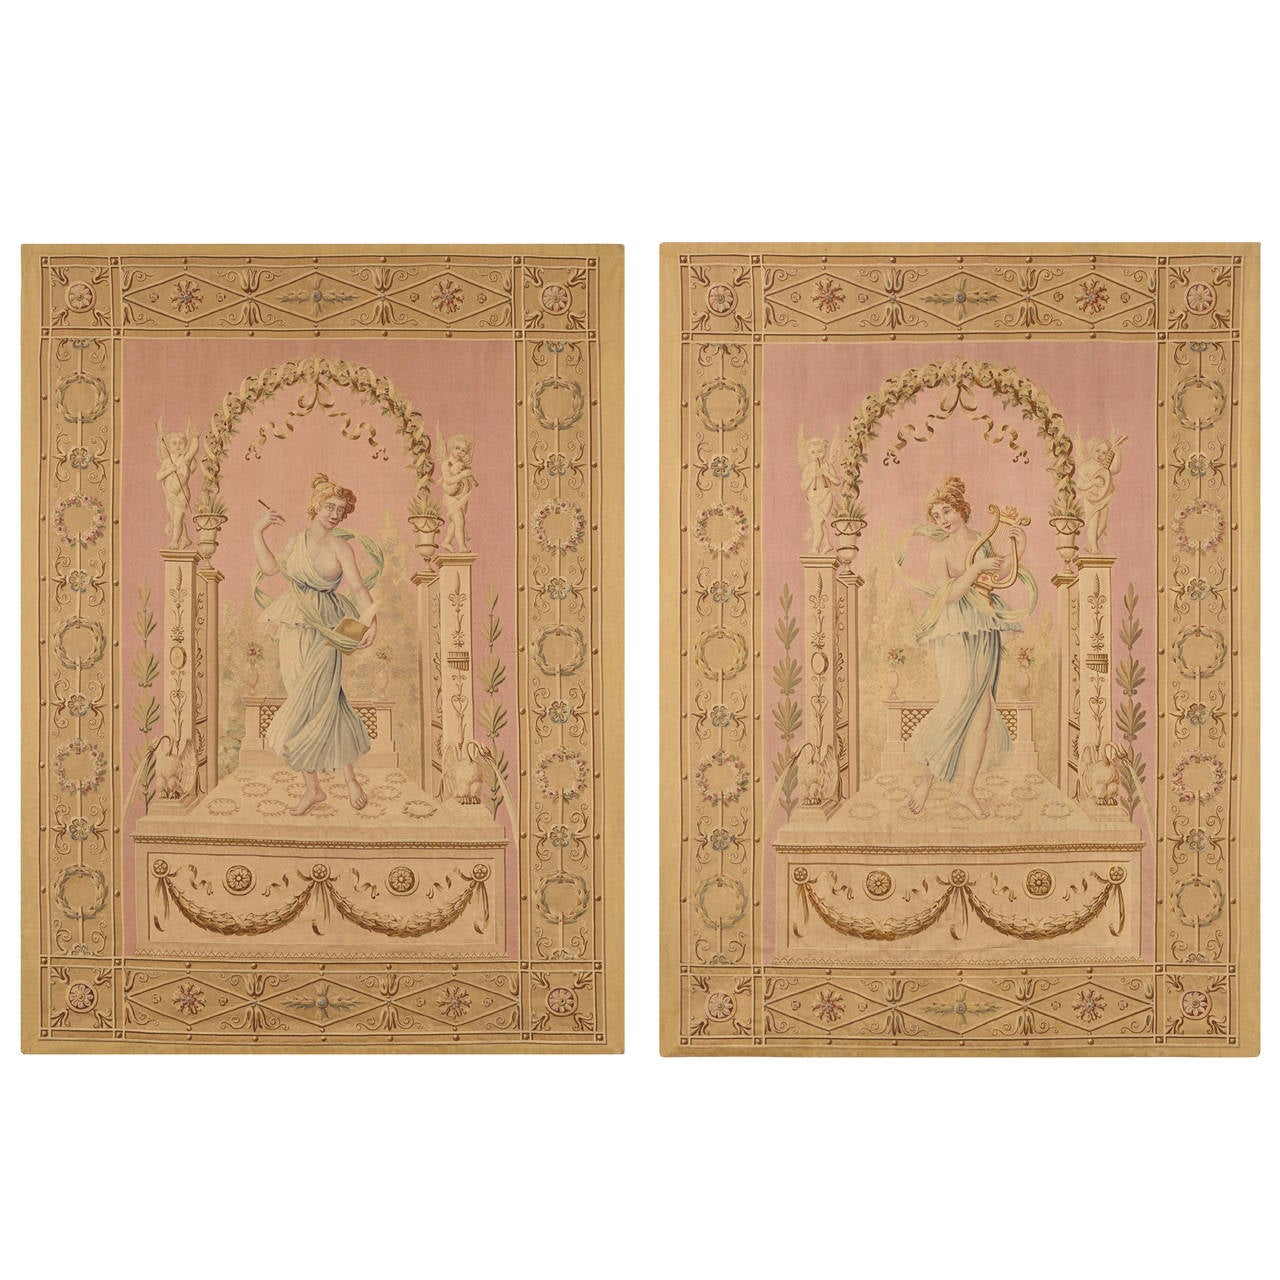 Beginning of the 19th Century, Pair of Tapestries from Aubusson Manufactory